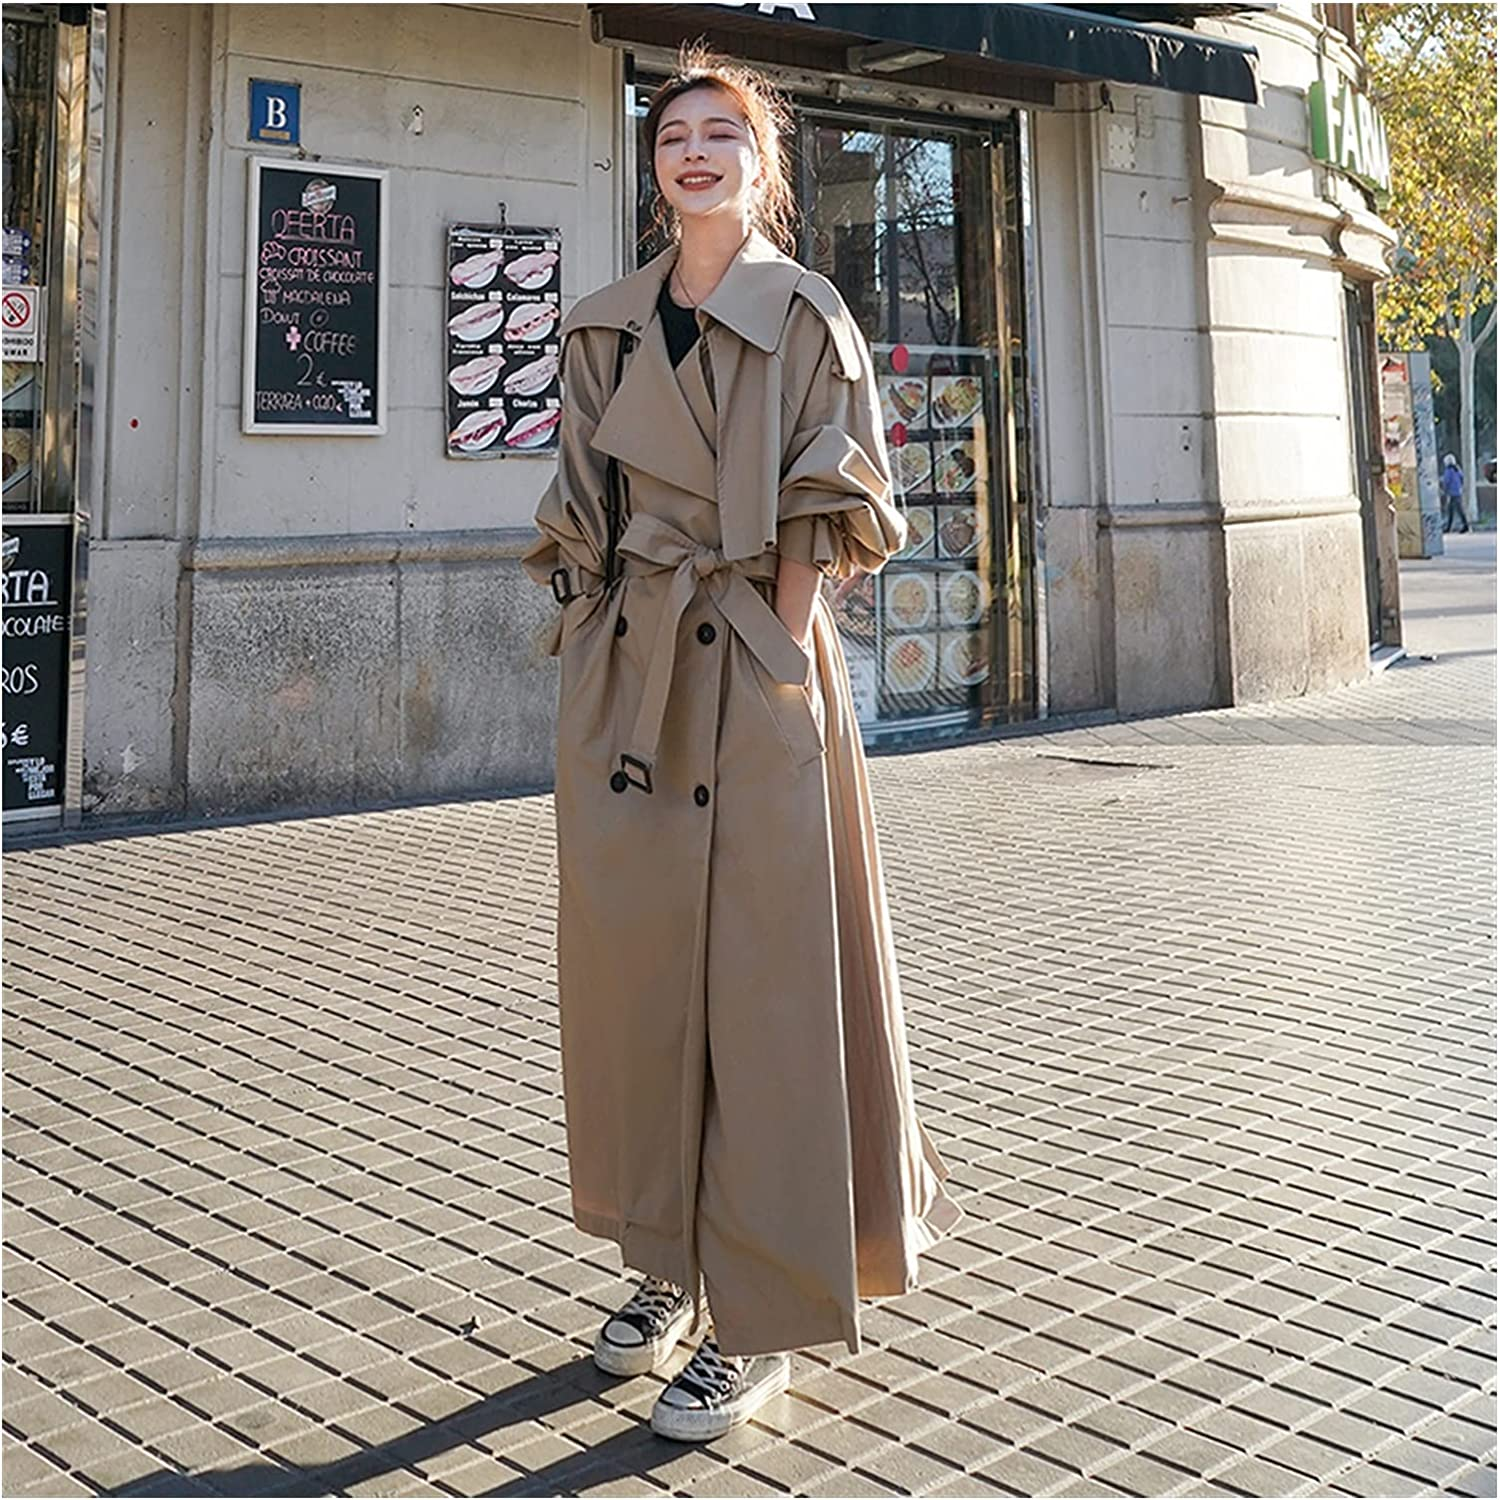 UXZDX Korean Style Loose Oversized Coat Women's New arrival 70% OFF Outlet X-Long Trench Do